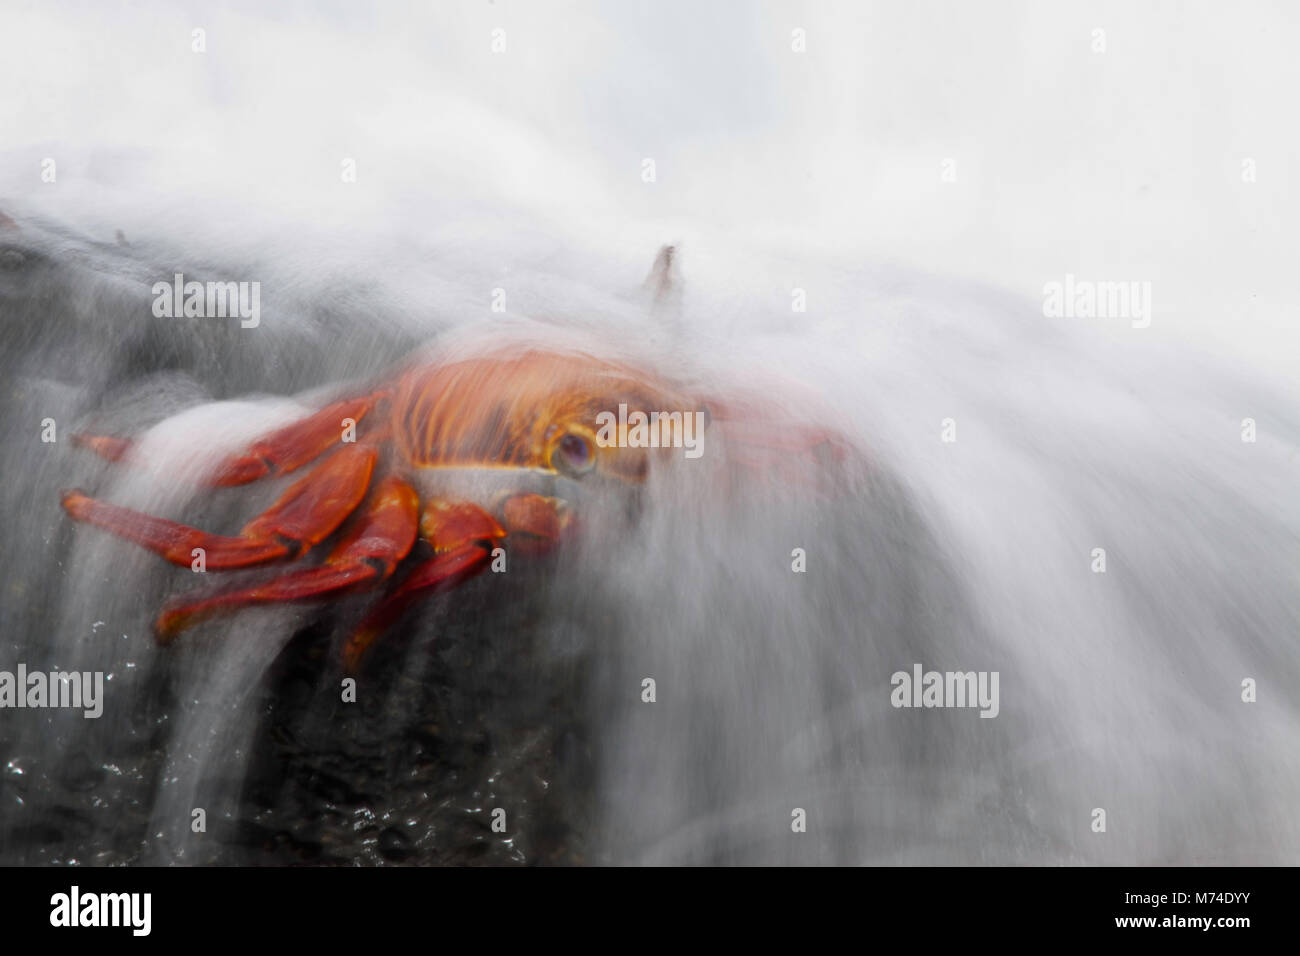 A wave washes over a Sally Lightfoot Crab, Graspus graspus, searching for algae to dine on in the intertidal zone, - Stock Image